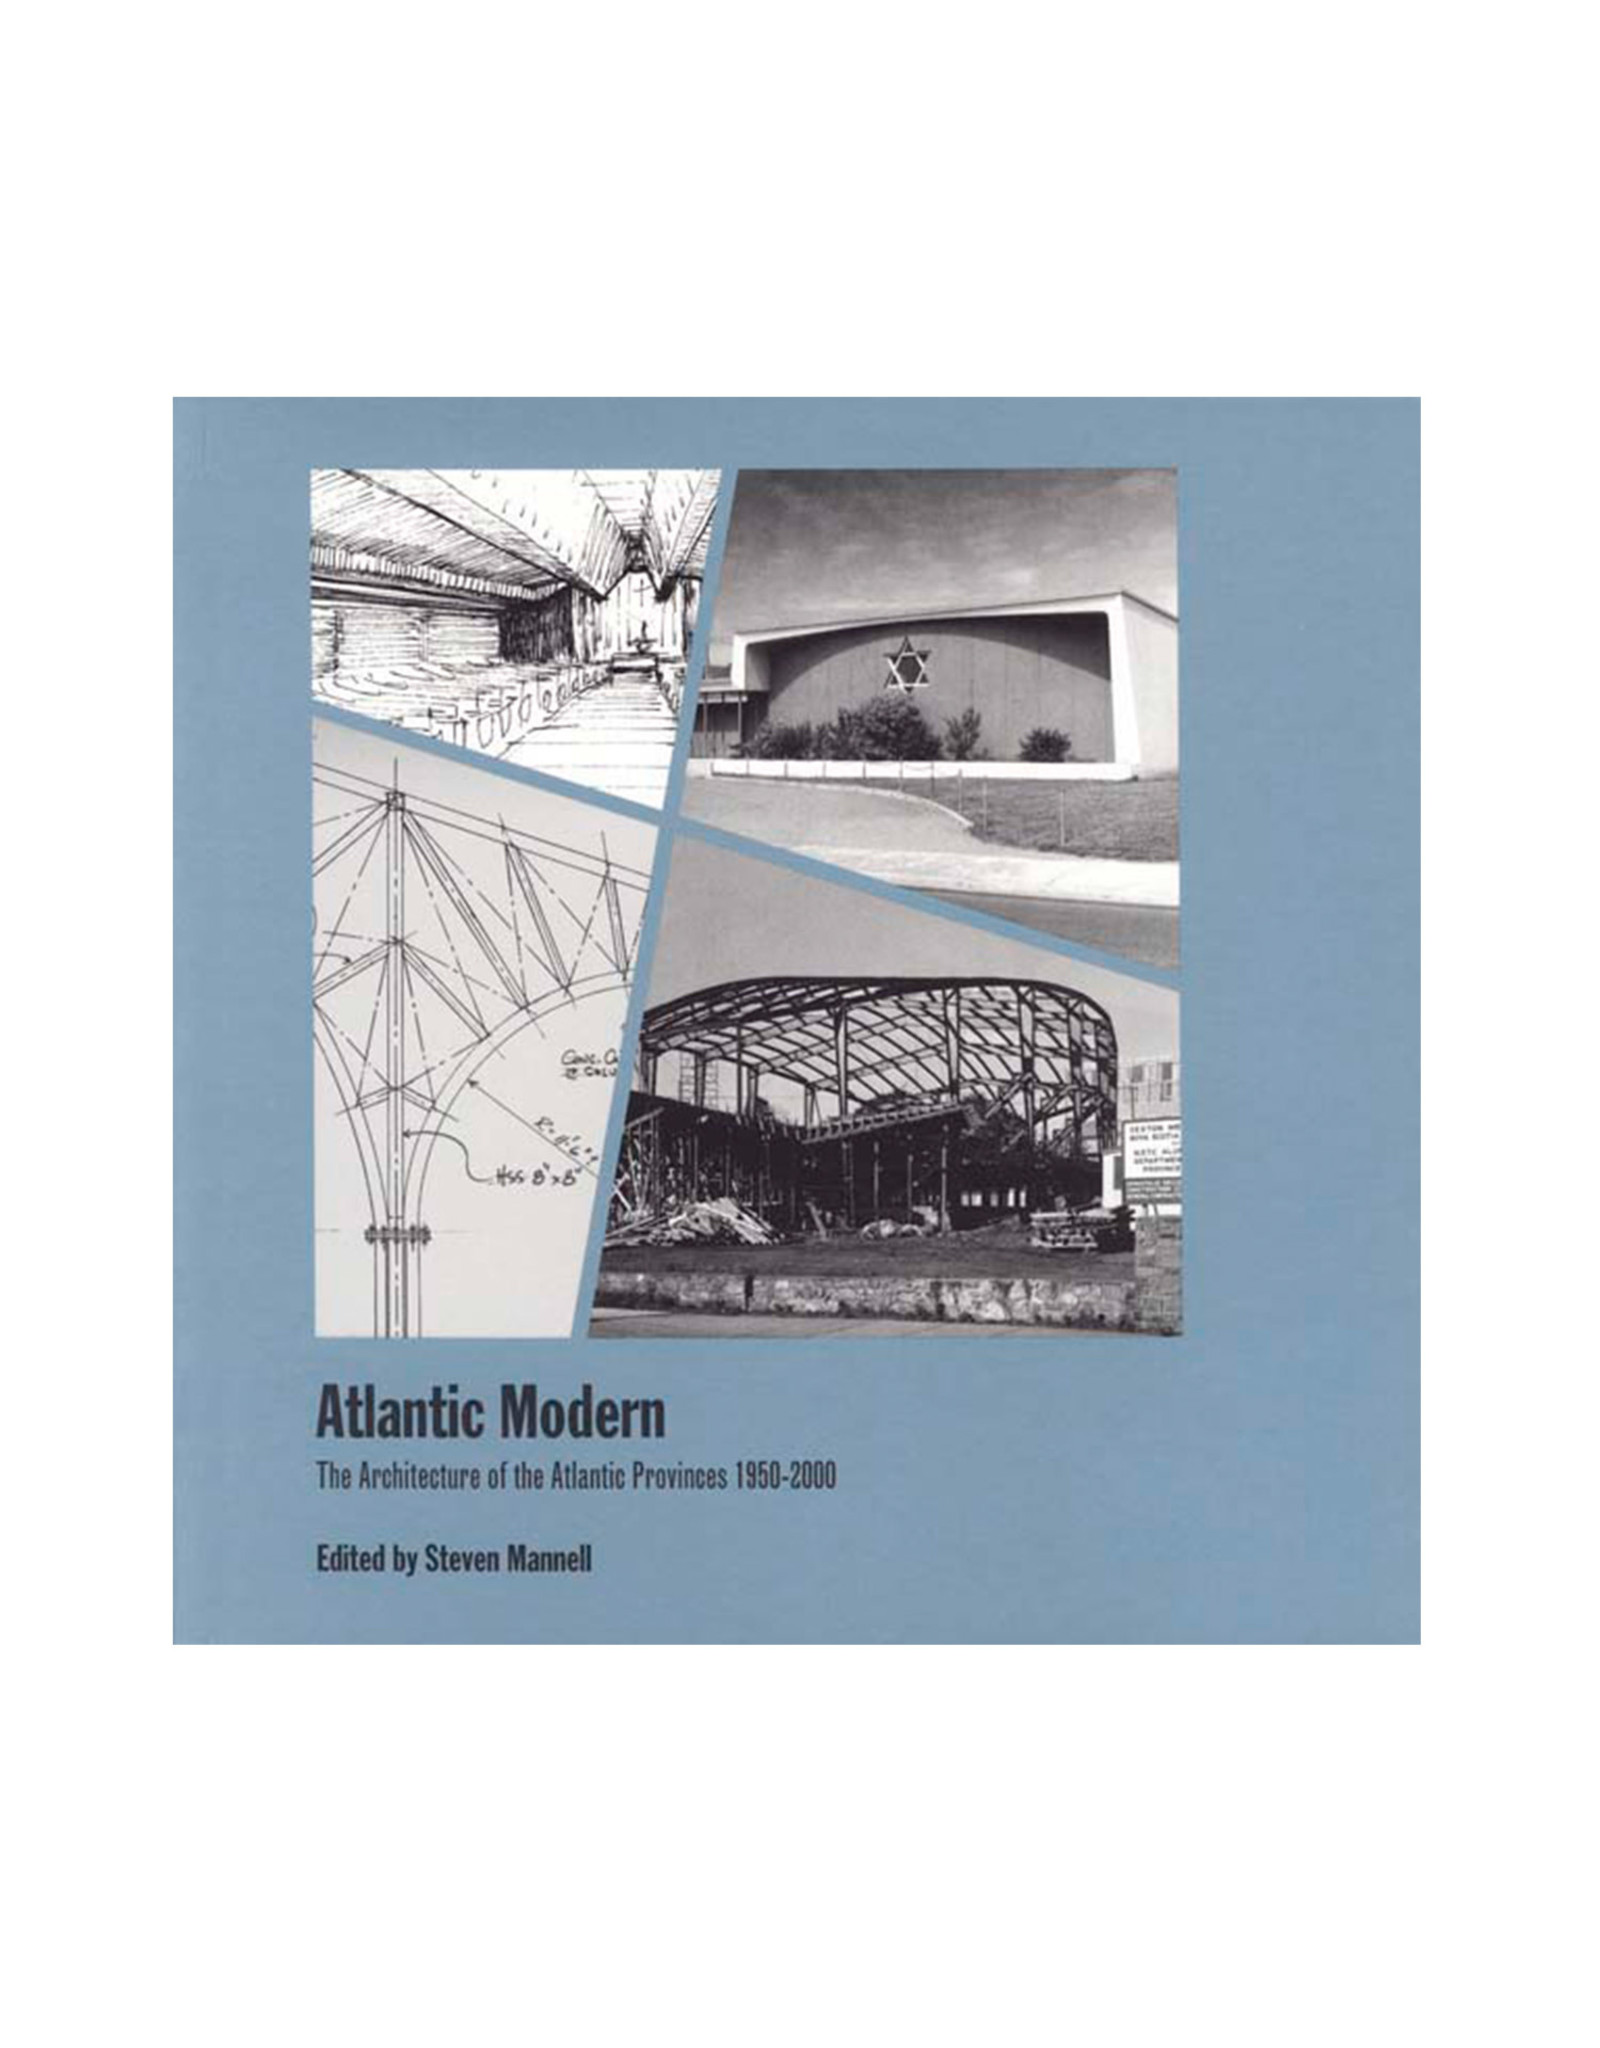 Atlantic Modern: The Architecture of the Atlantic Provinces 1950-2000